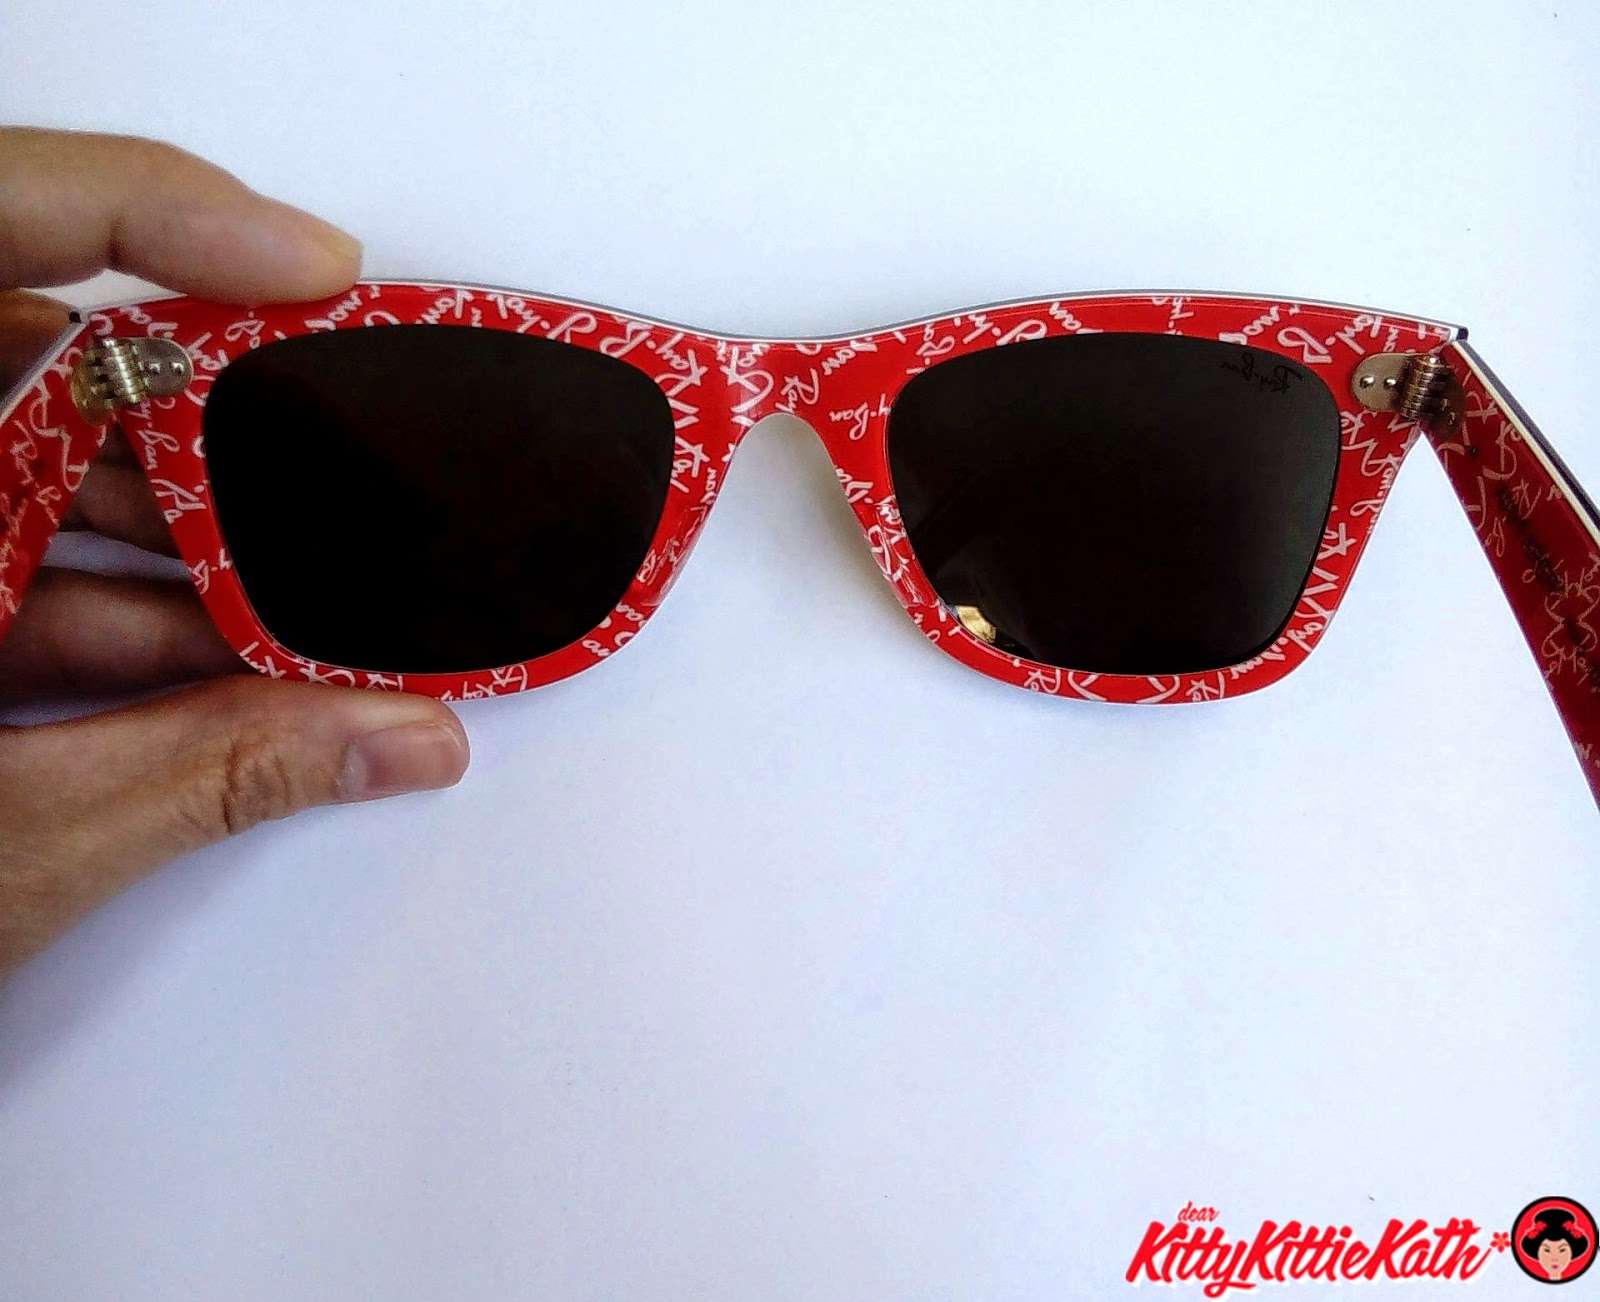 ray ban wayfarer limited edition sunglasses  ray ban wayfarer love from glasses online philippines ray ban rb2140 original wayfarer rare prints special series logomania 1016